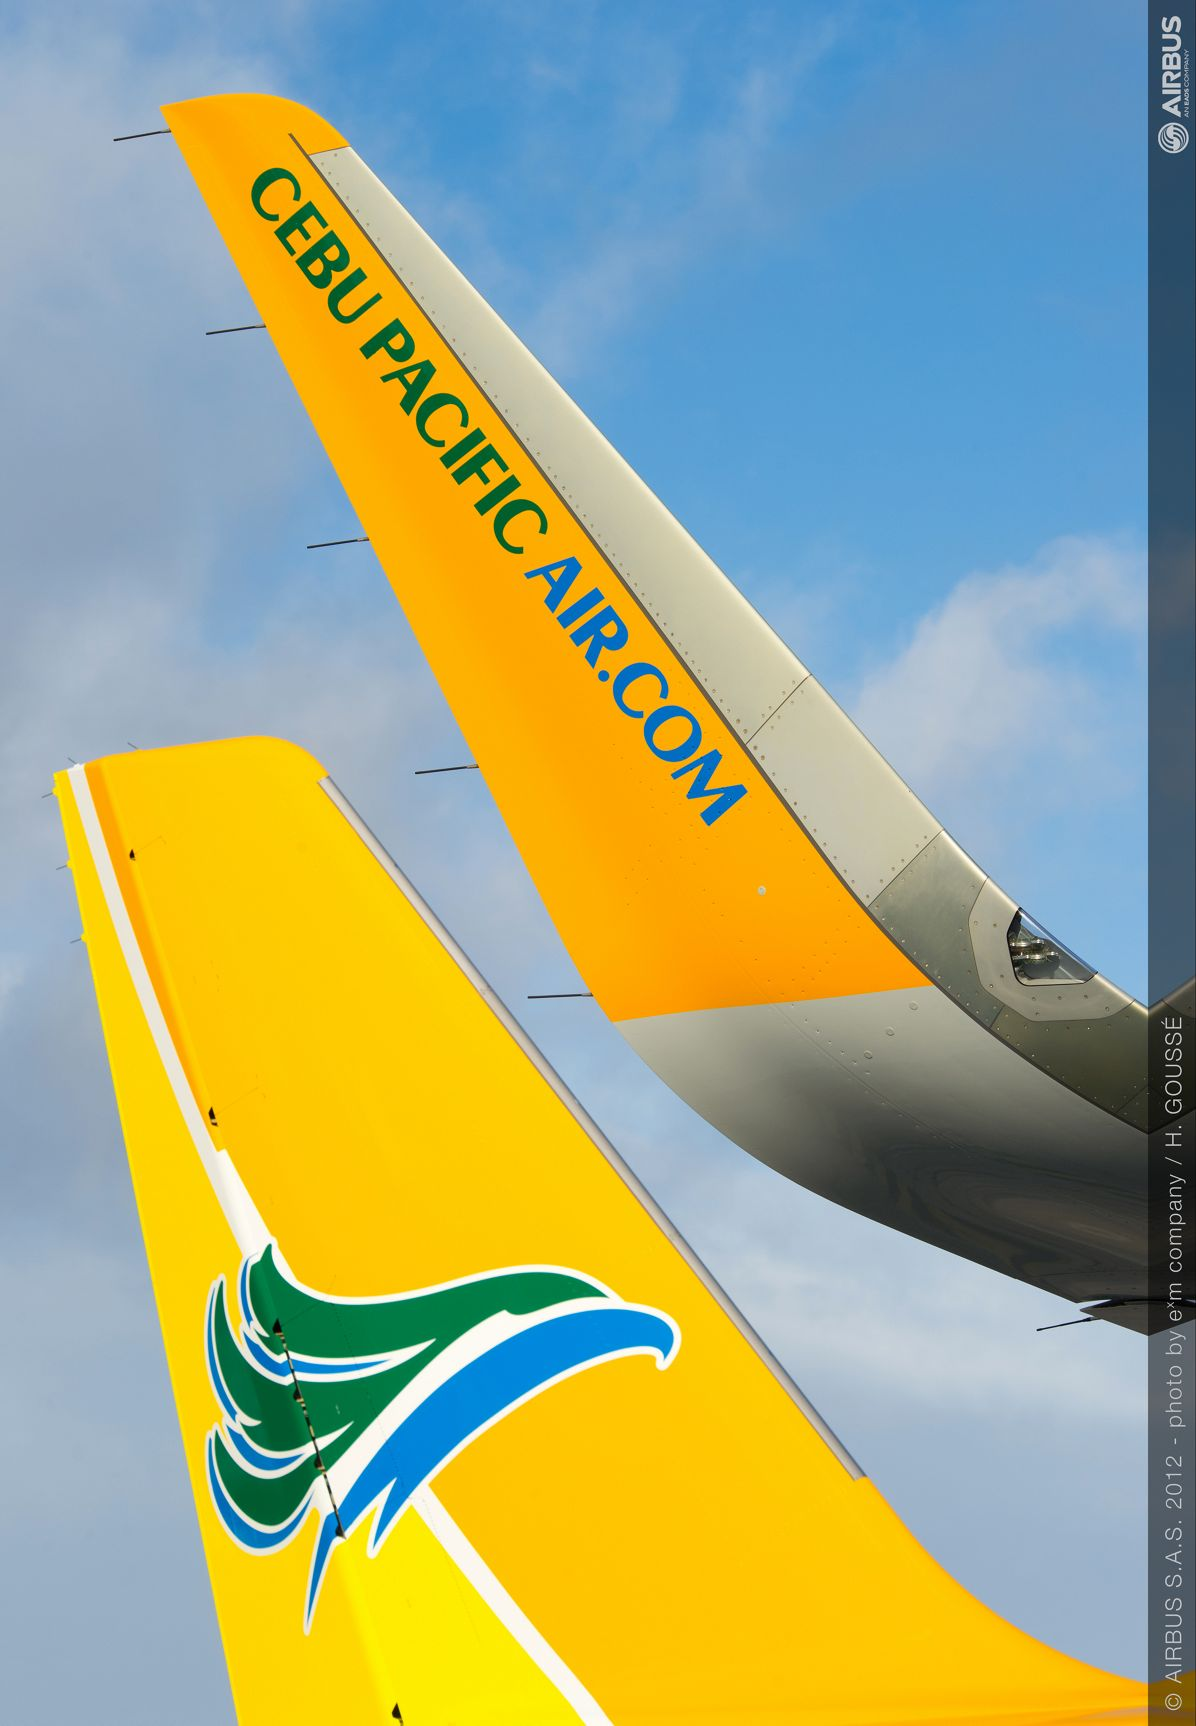 CLOSE UP ON SHARKLET CEBU, A320 Cebu Pacific Sharklet